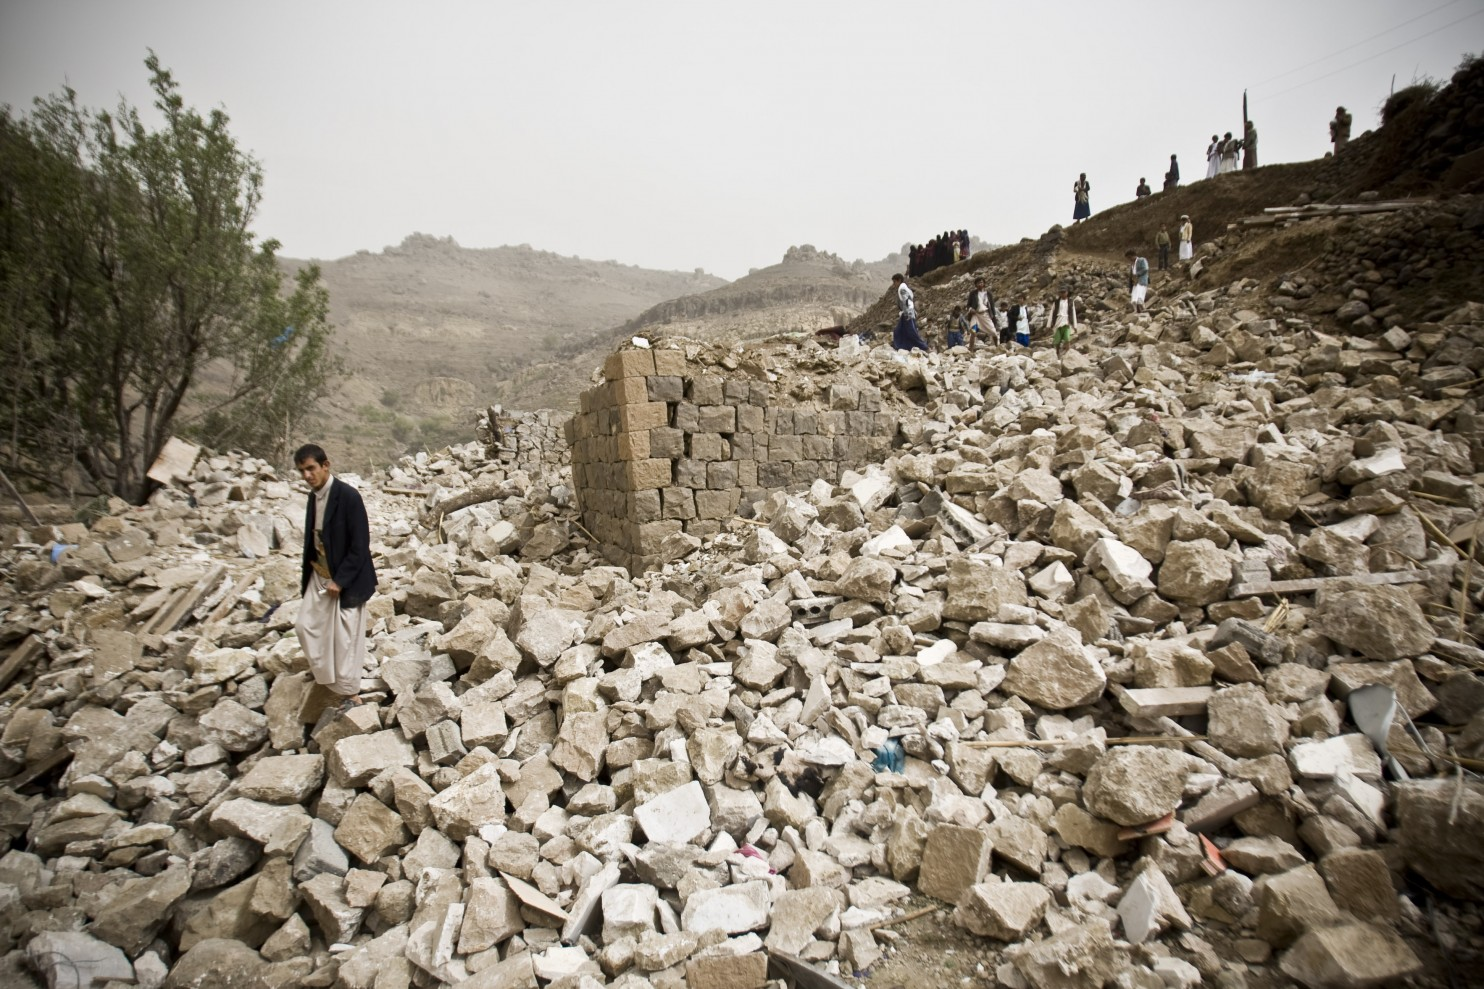 550 civilians killed in Yemen after Saudi airstrikes : UN